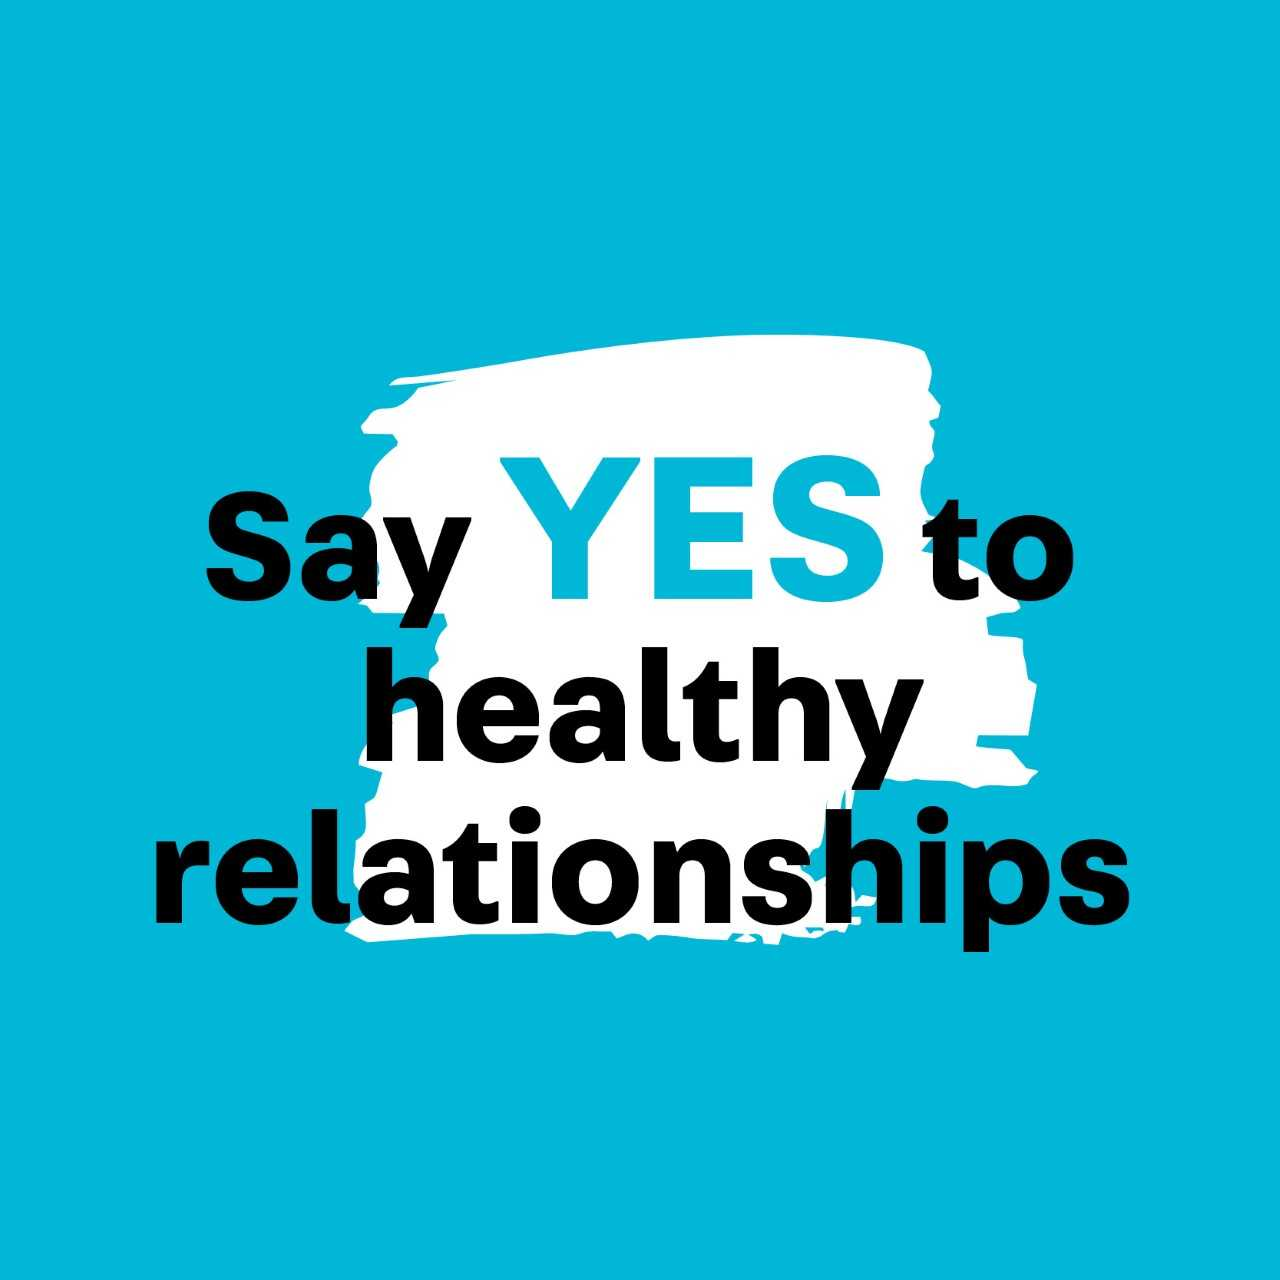 Say yes to healthy relationships